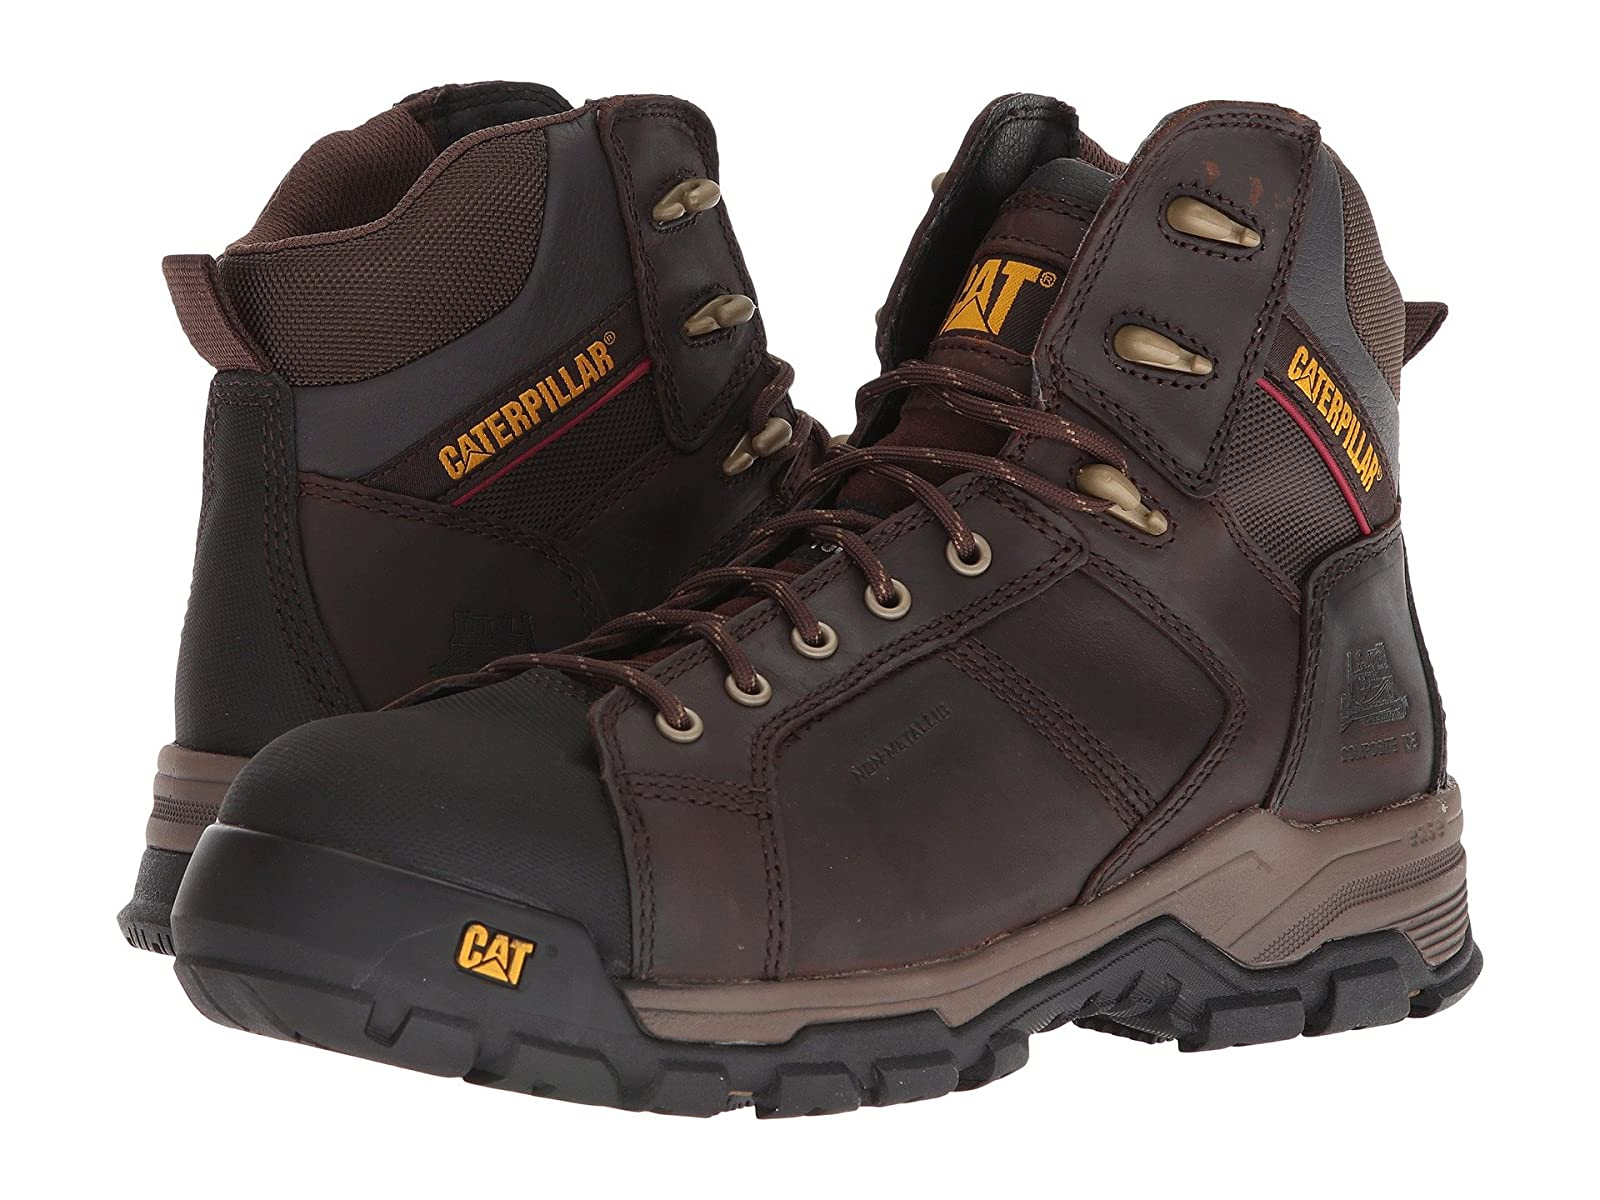 Caterpillar Carbondate Nano ToeSelling fashionable and eye-catching shoes